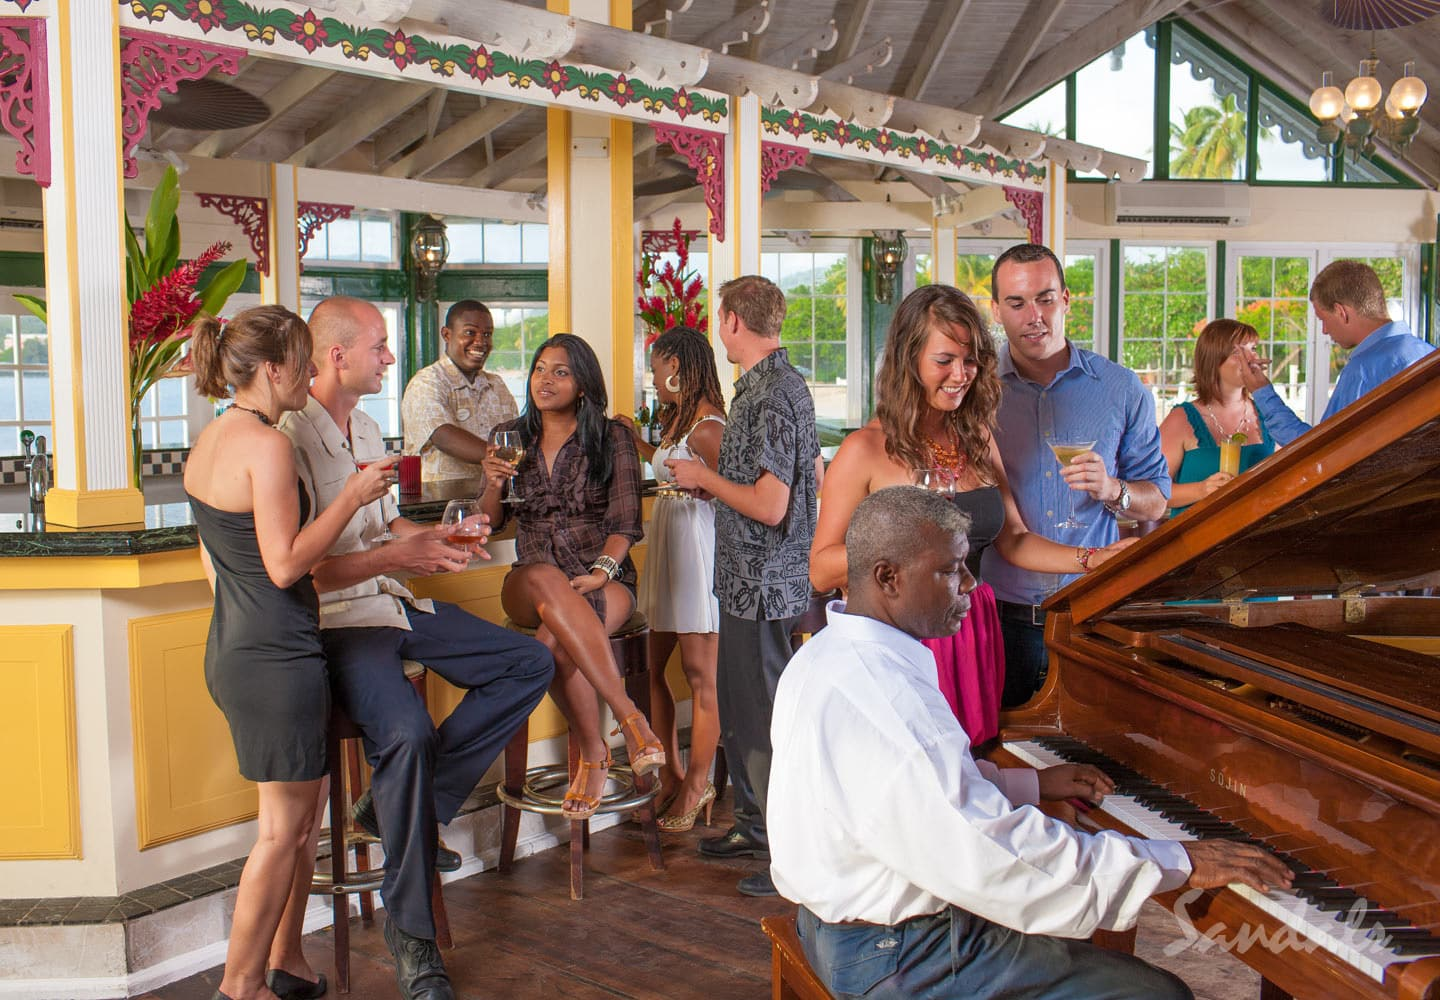 woman and men having a good time, listening to music and chatting at the bar at the sandals hylcyon beach resort in st. lucia during their all inclusive group vacations